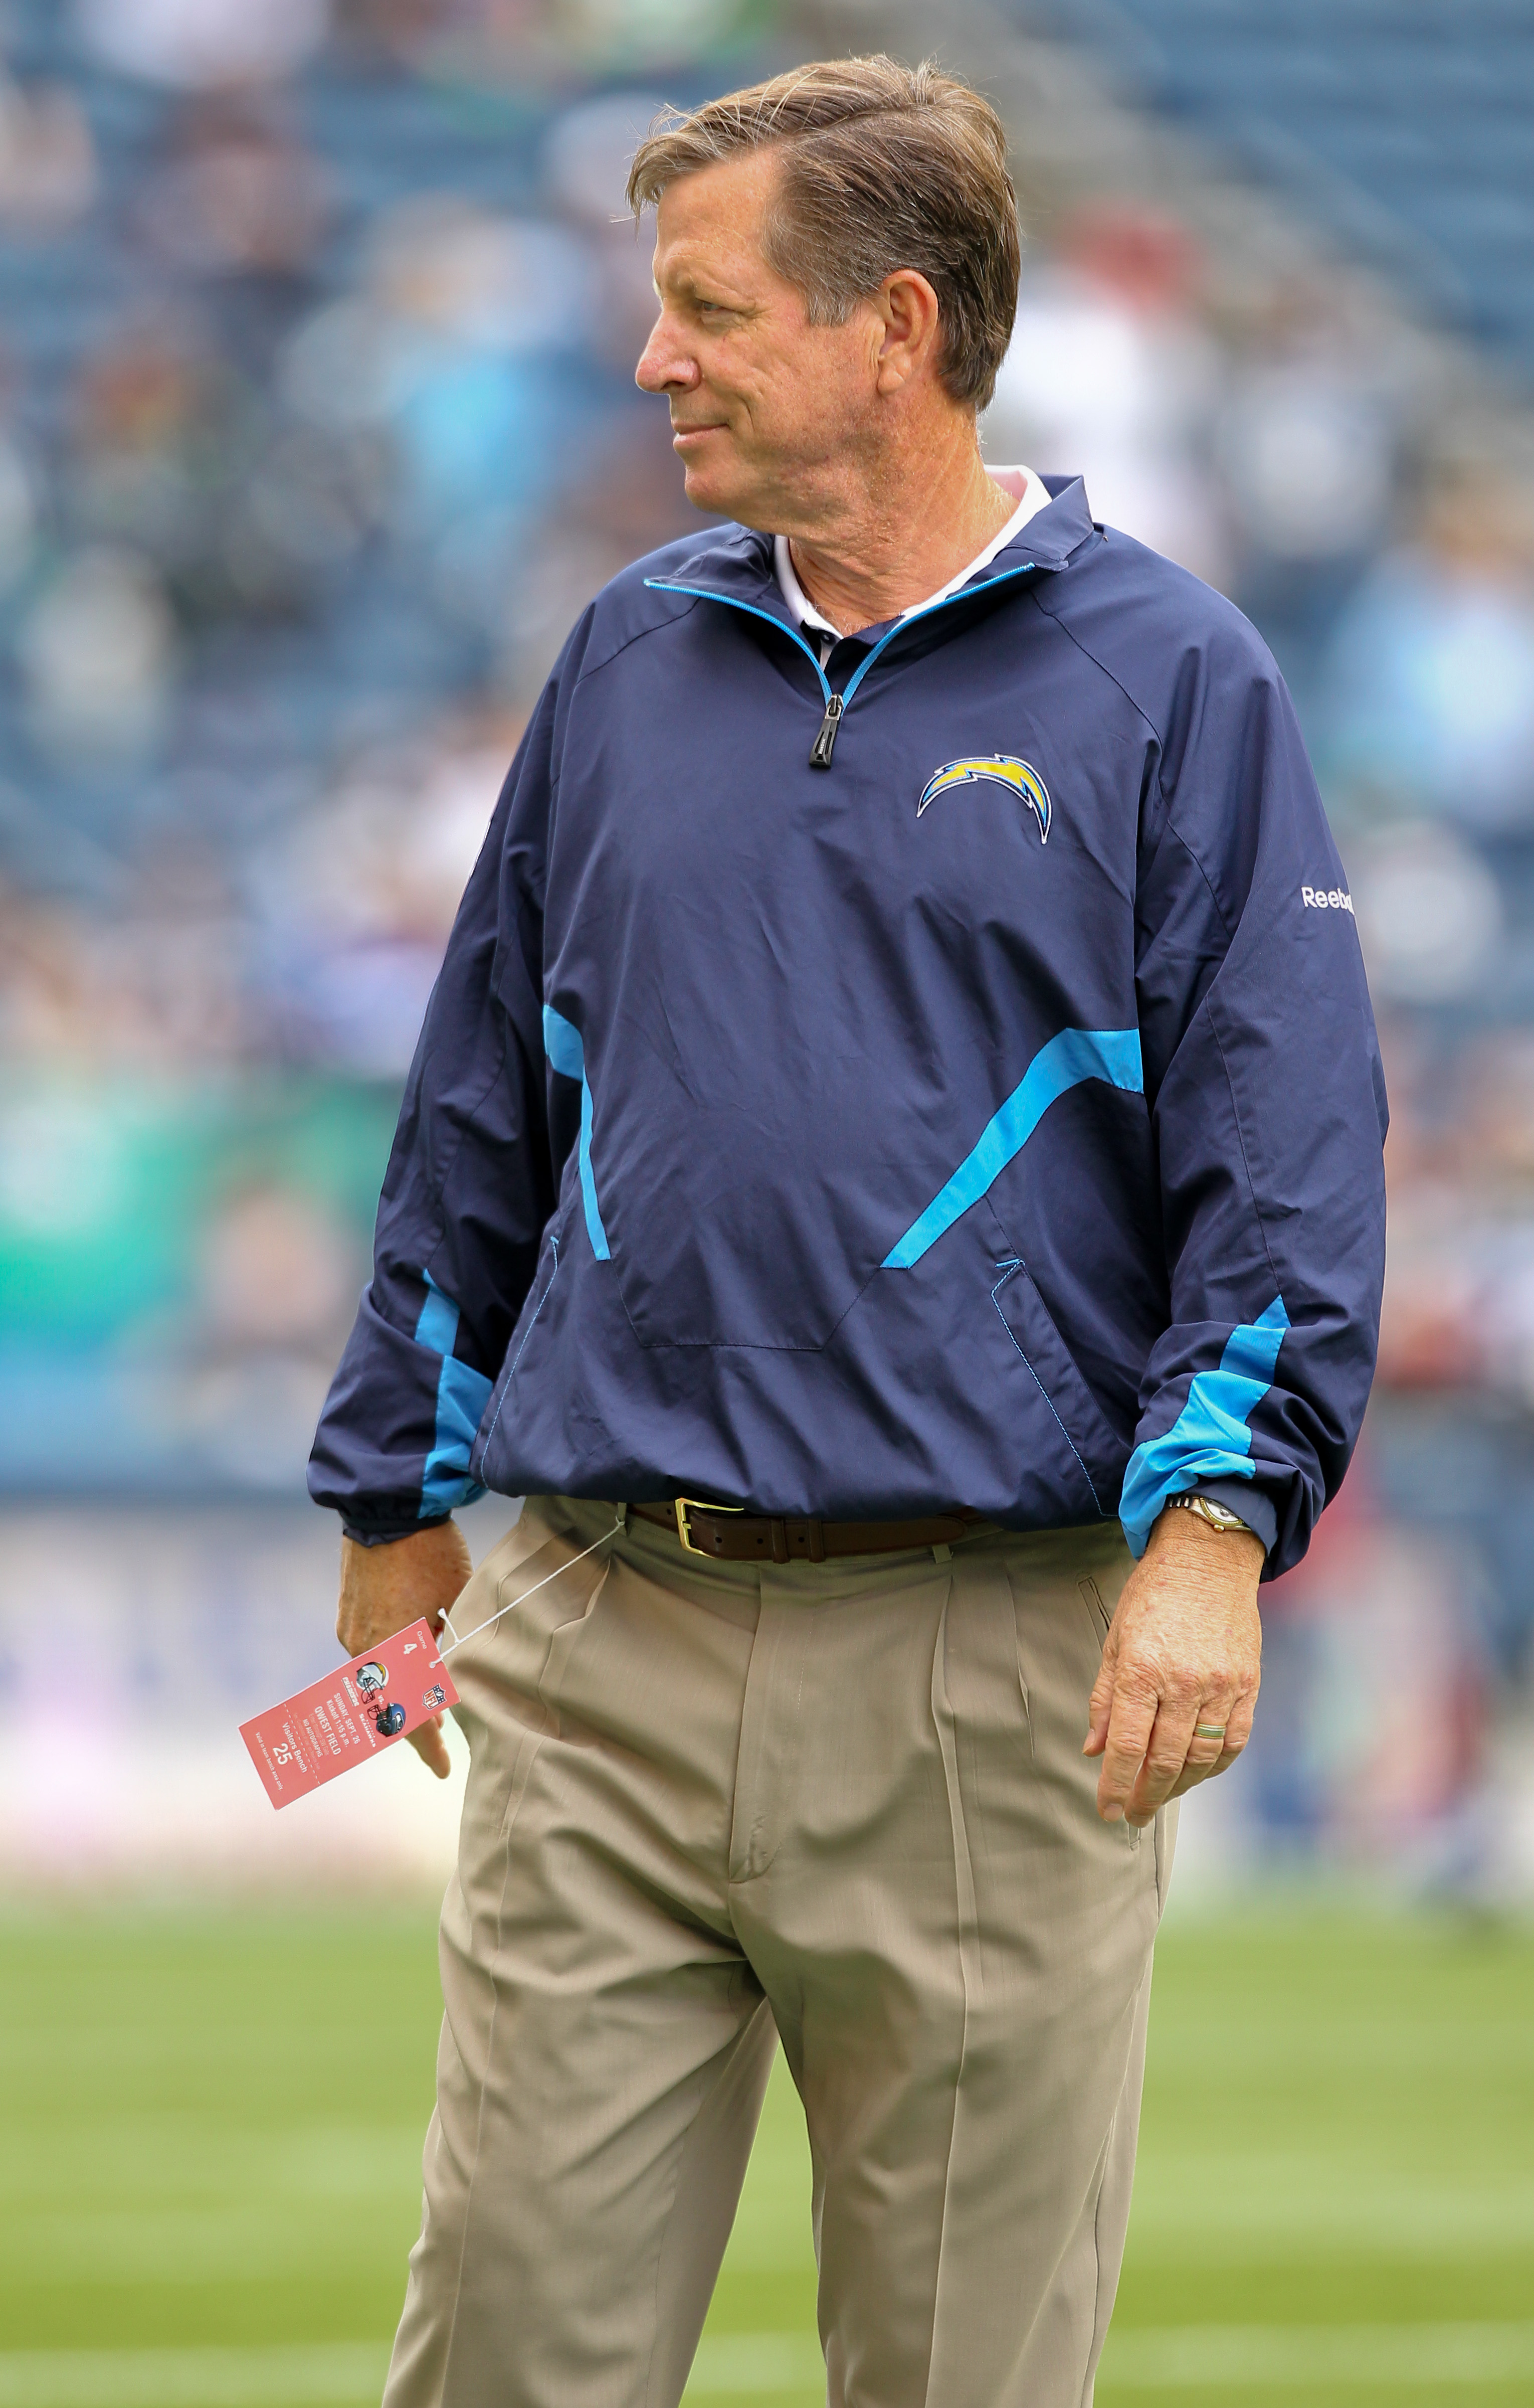 SEATTLE - SEPTEMBER 26:  Head coach Norv Turner of the San Diego Chargers looks on during warmups prior to the game against the Seattle Seahawks at Qwest Field on September 26, 2010 in Seattle, Washington. (Photo by Otto Greule Jr/Getty Images)